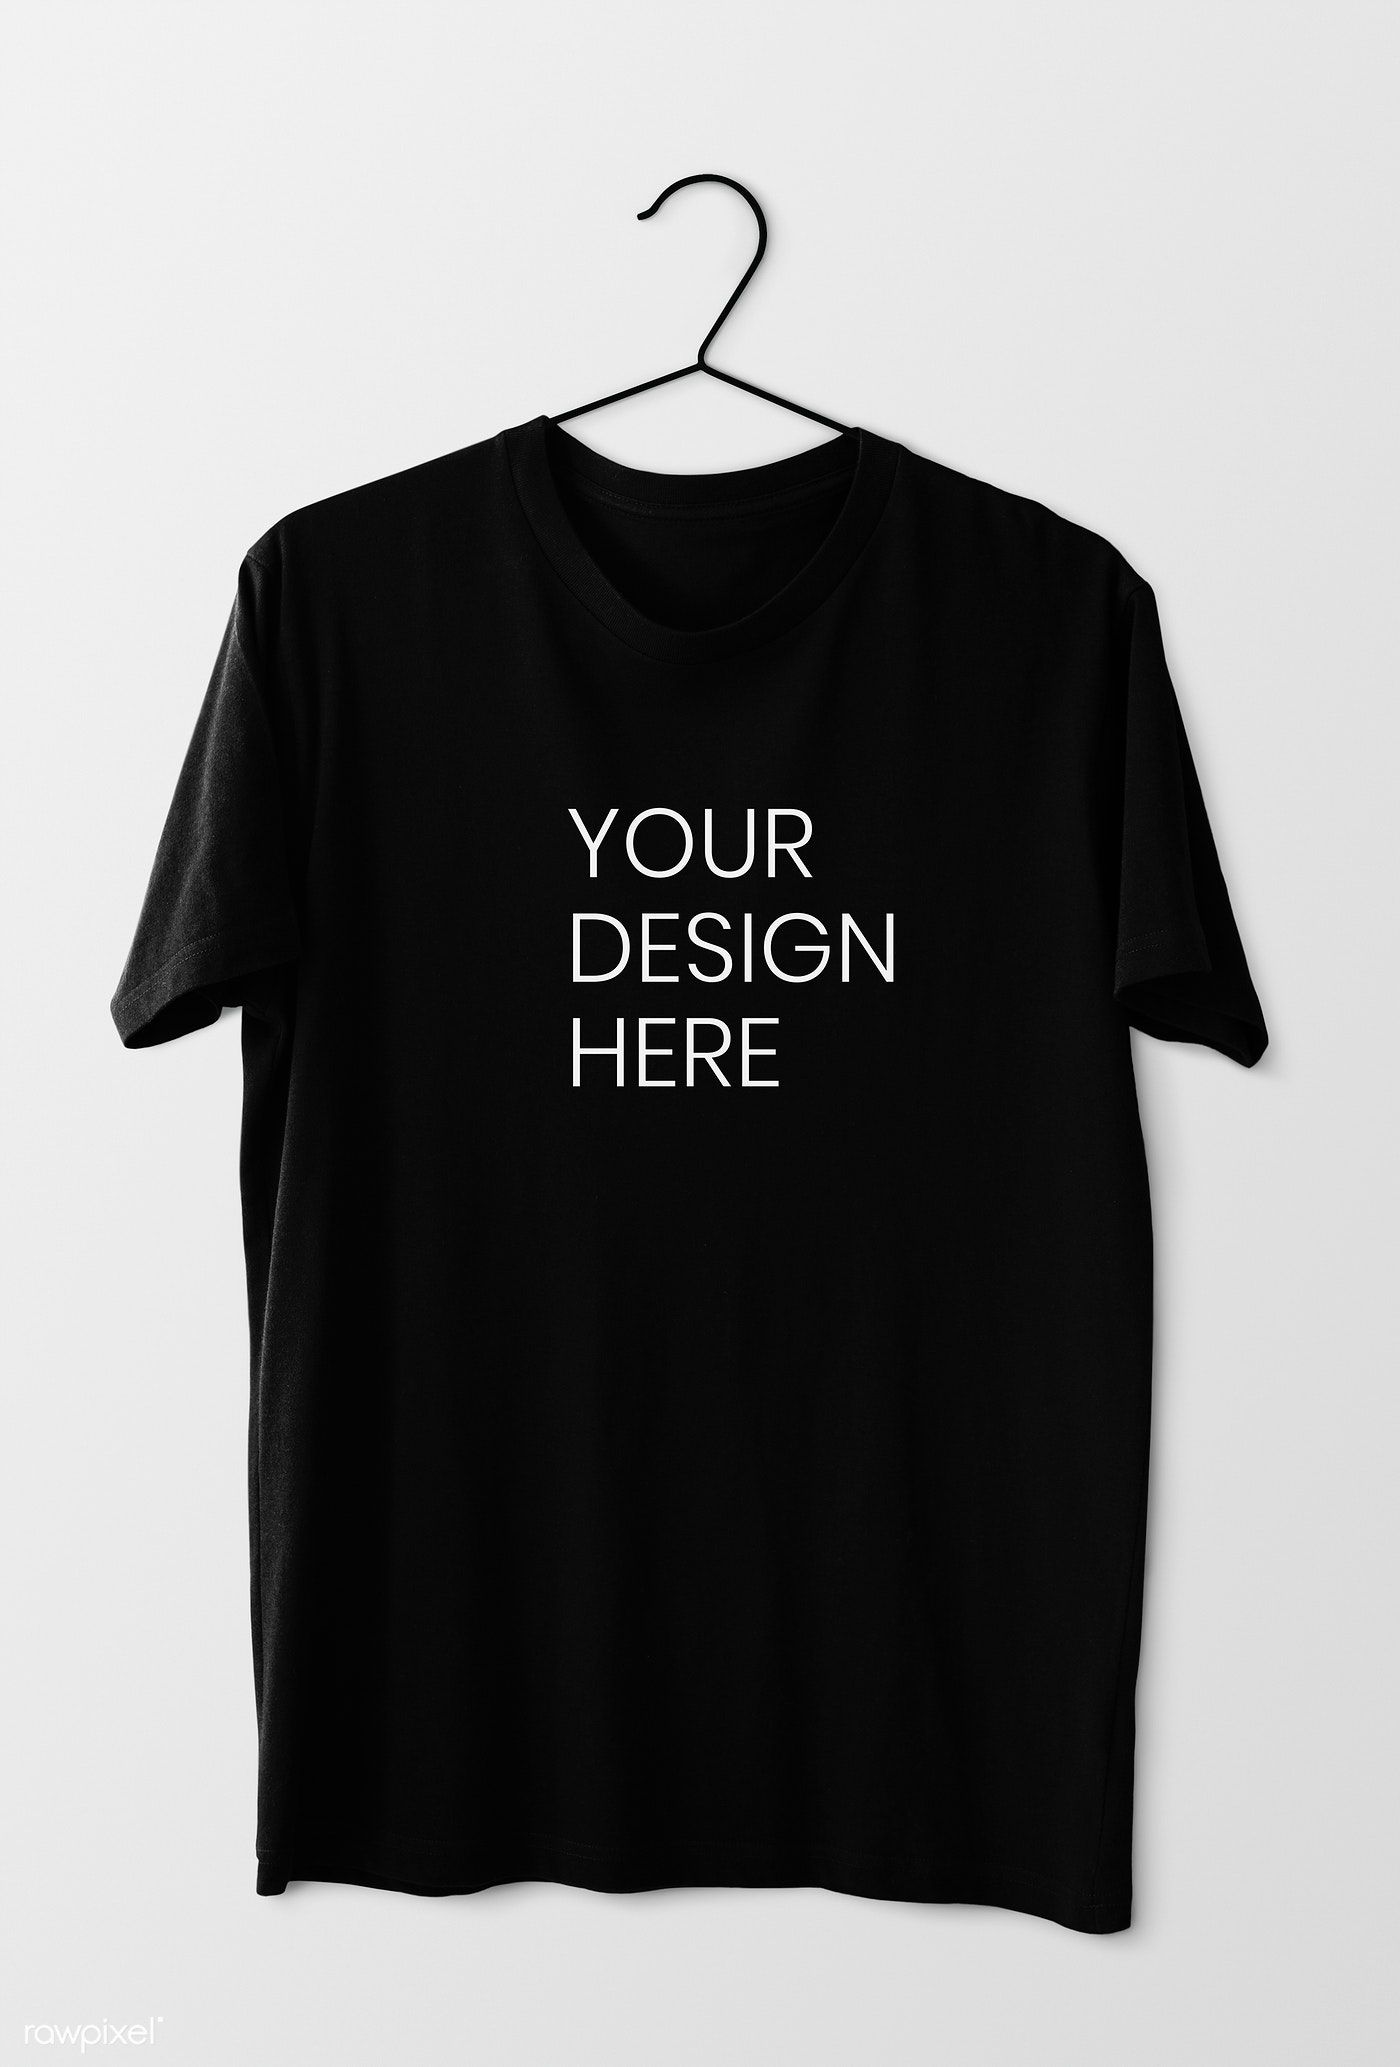 Download Simple Black Tee Mockup On A White Wall Premium Image By Rawpixel Com Black Tee T Shirt Photo Printing Plain Black Tee